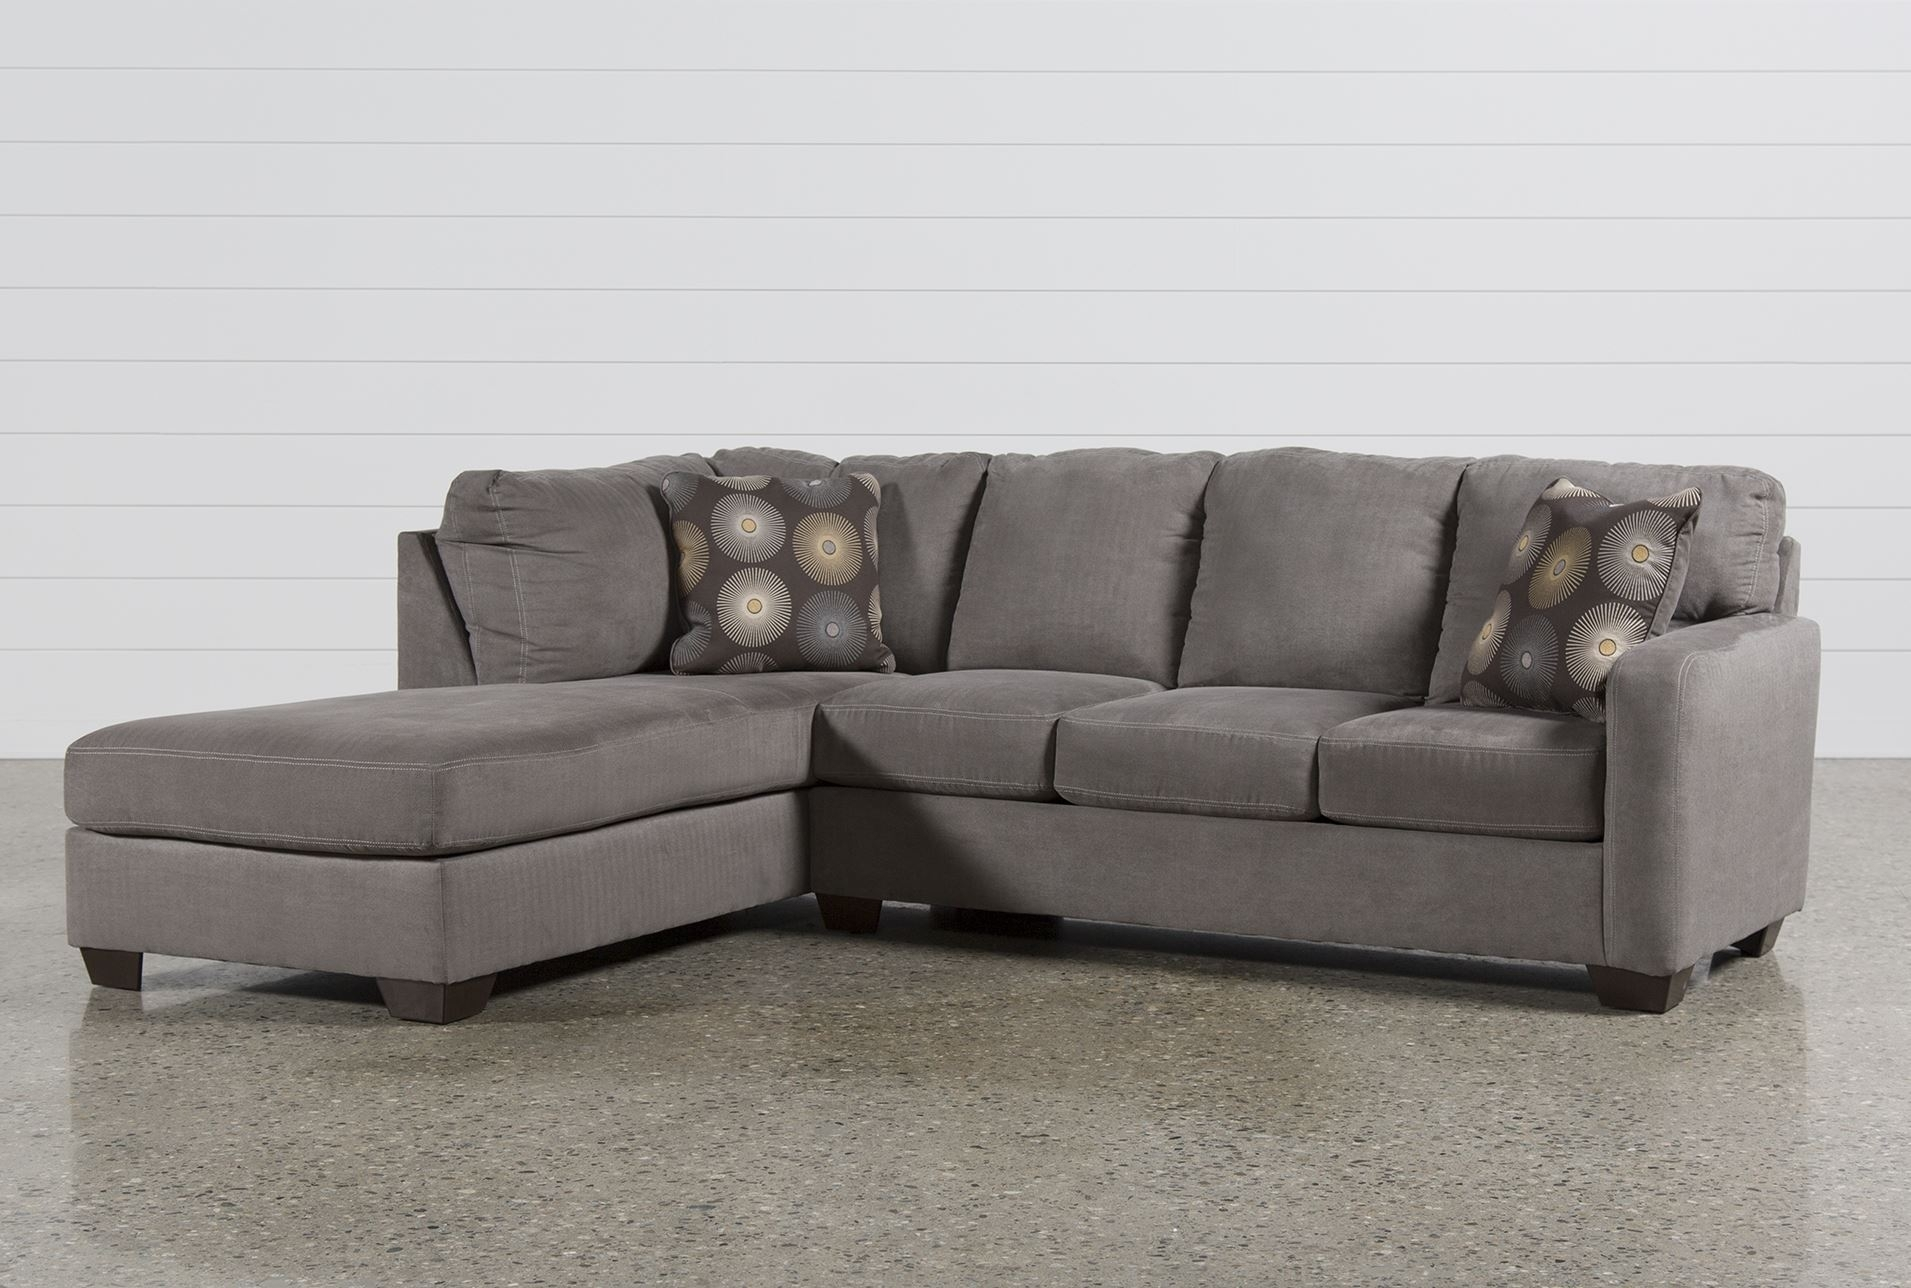 Laf Chaise Sectional Sofa | Baci Living Room Intended For Sierra Down 3 Piece Sectionals With Laf Chaise (Image 14 of 25)